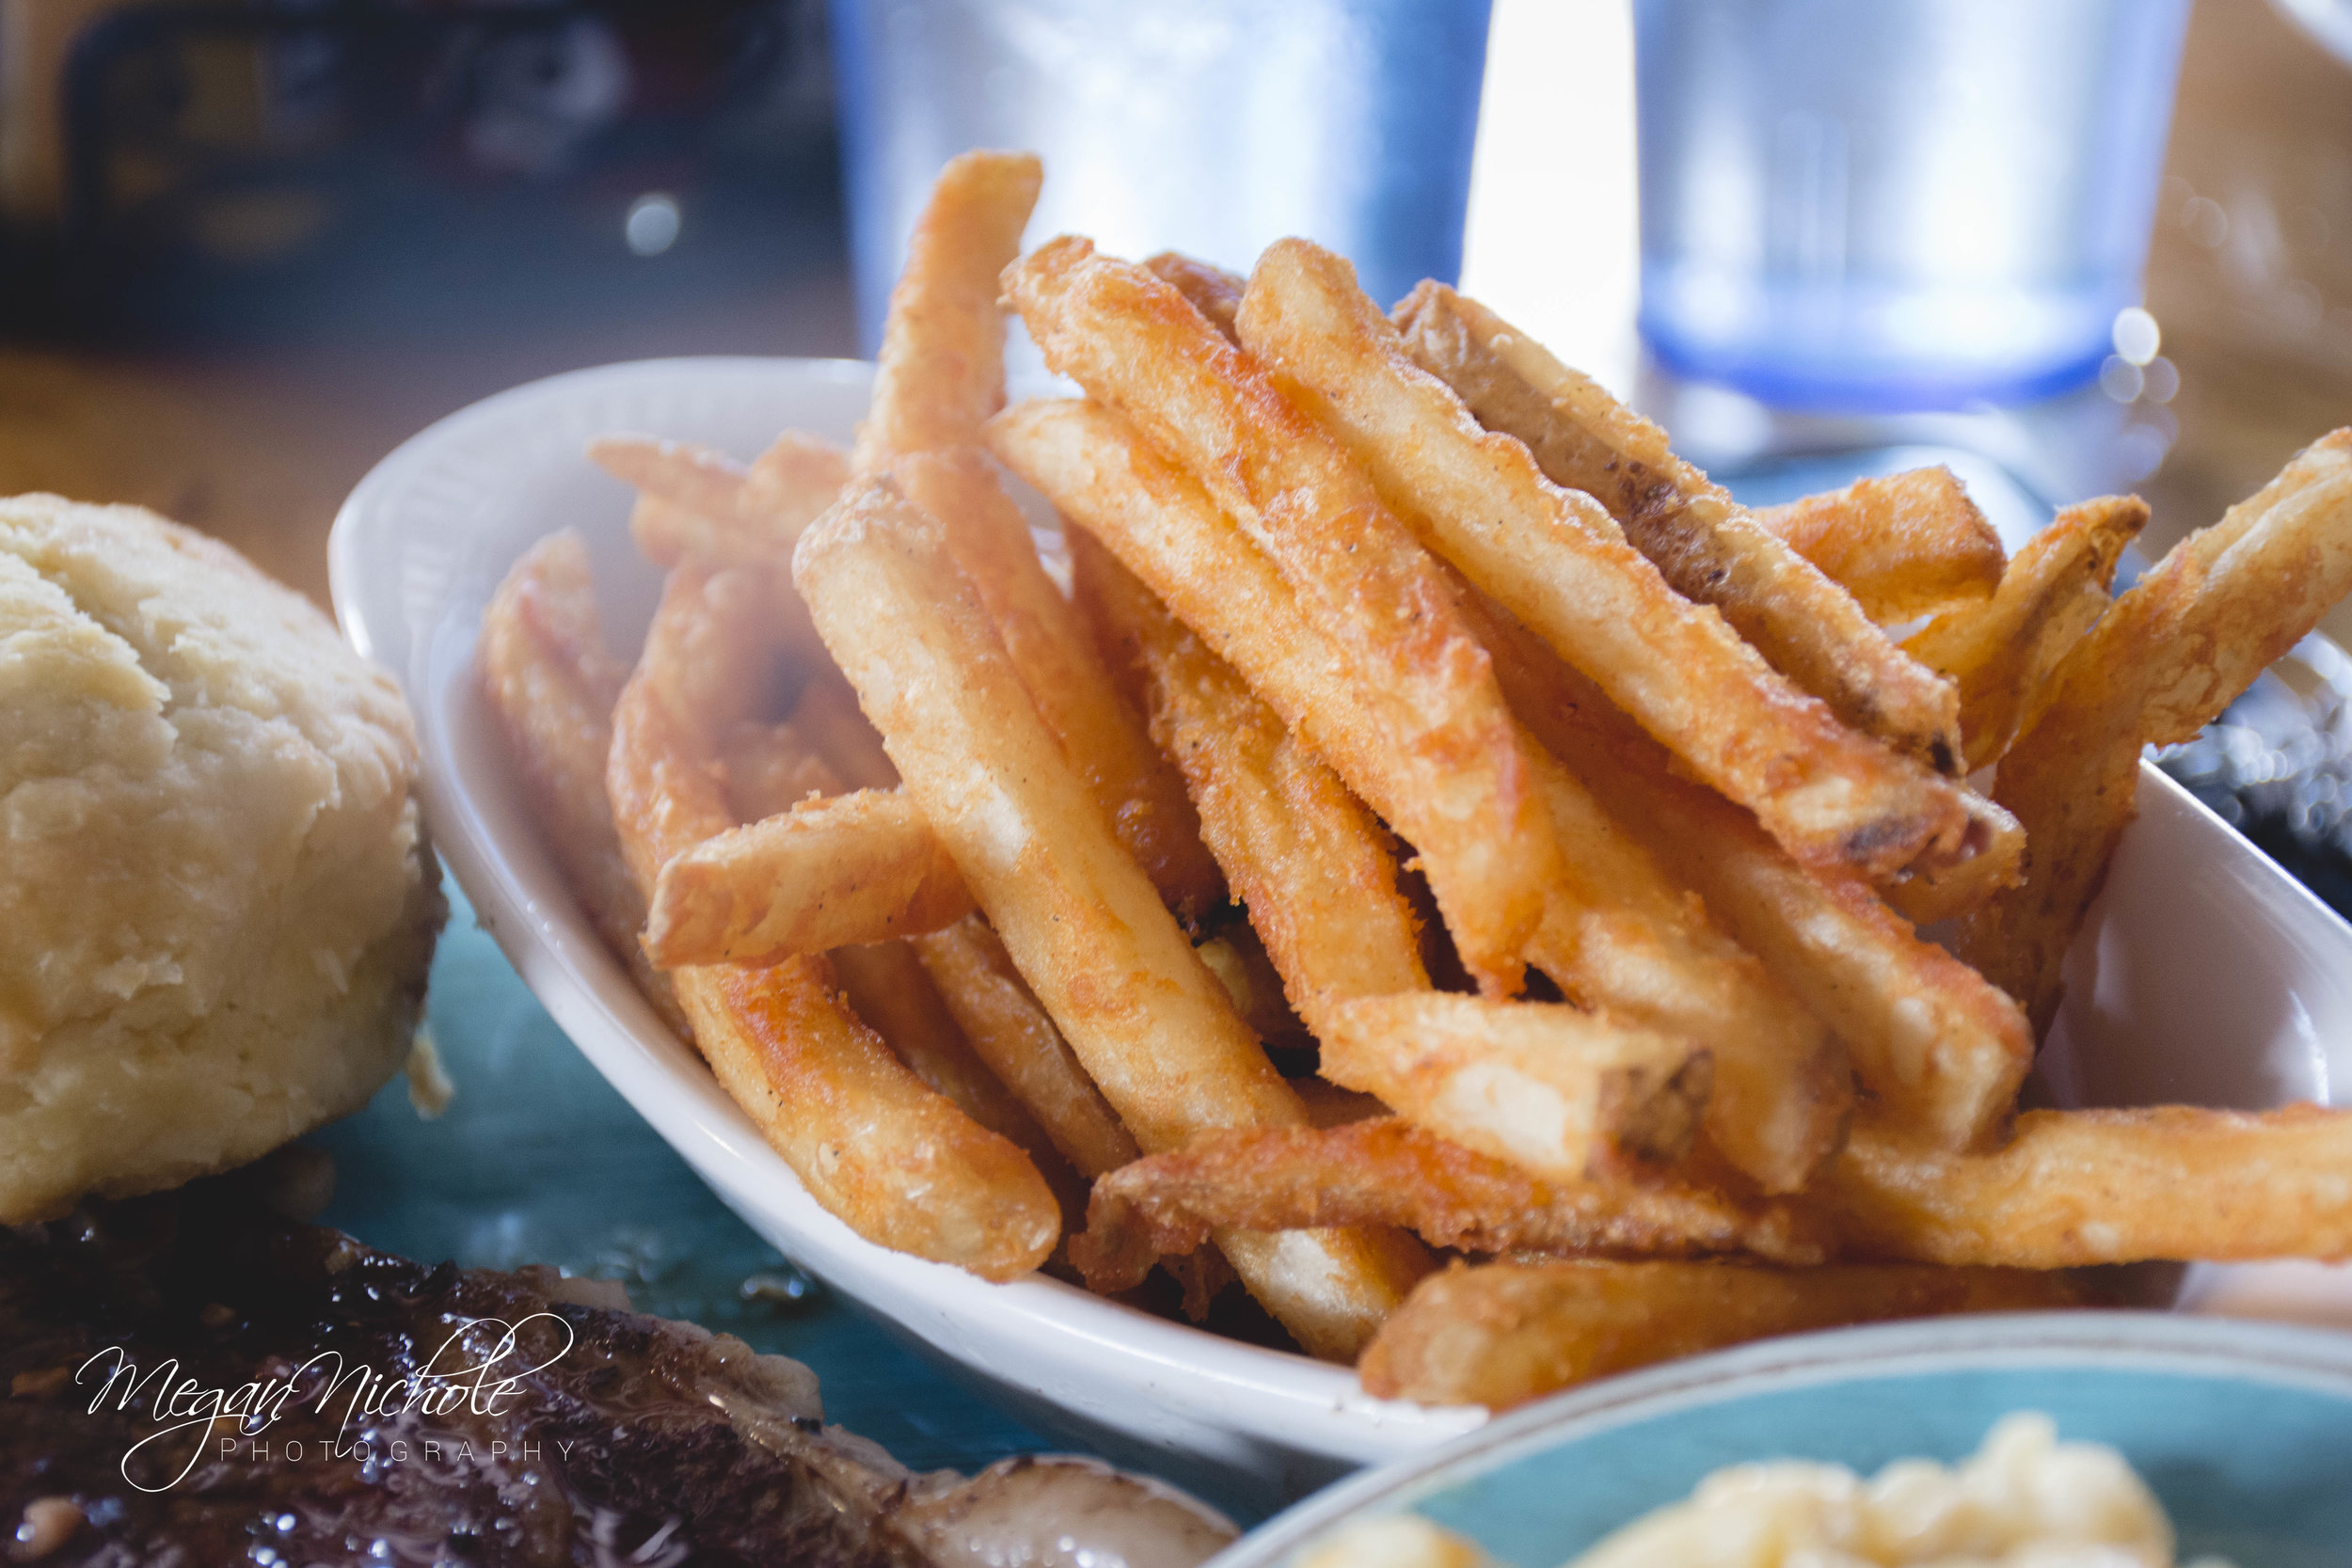 Page's french fries